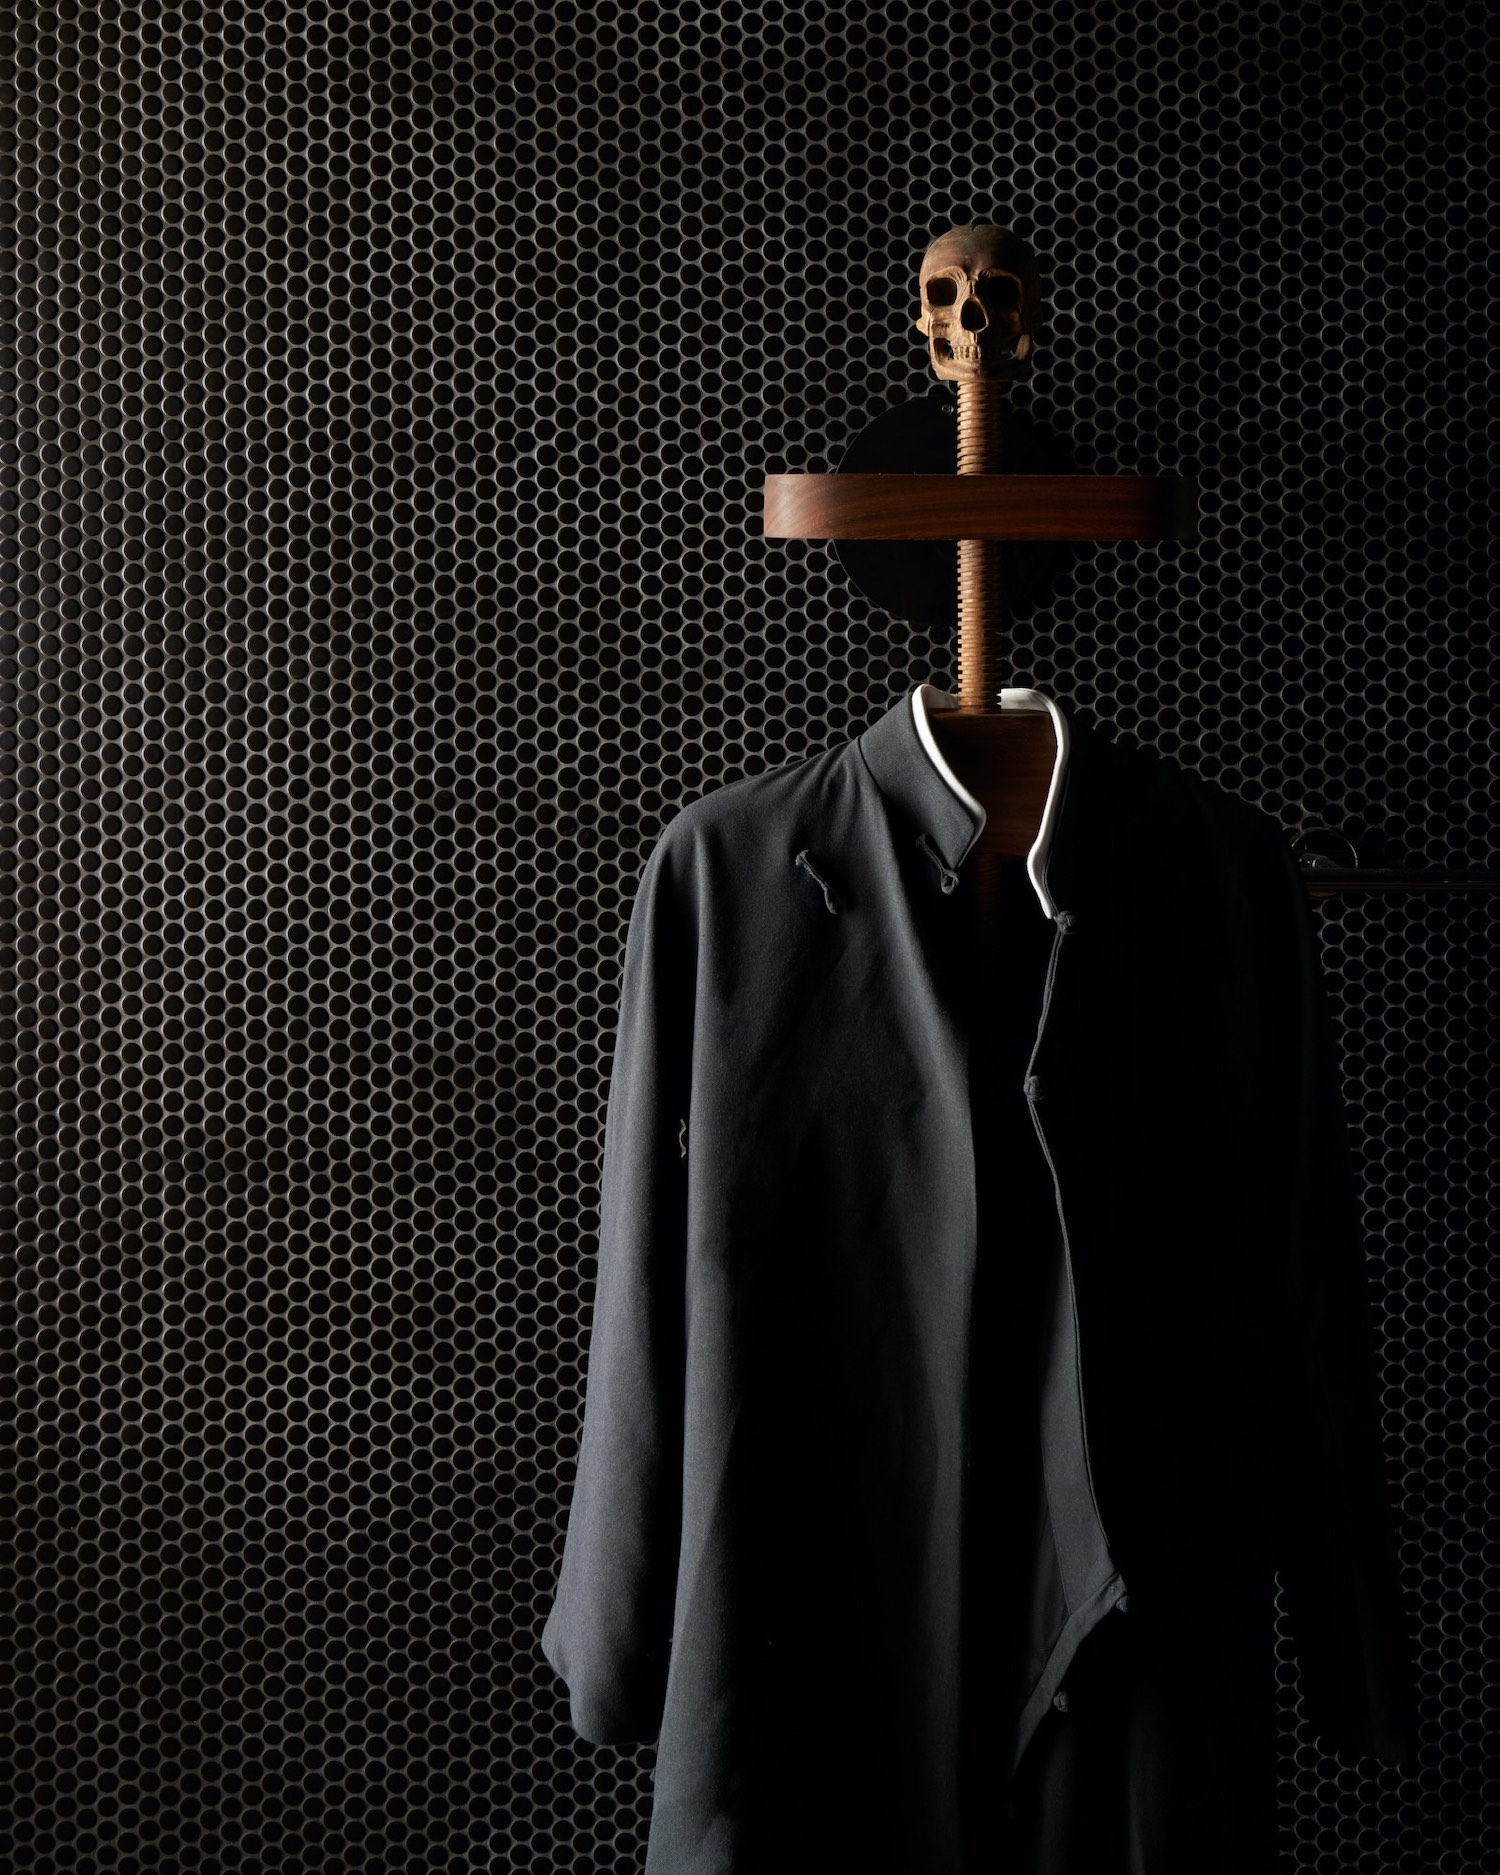 black suit and black wall